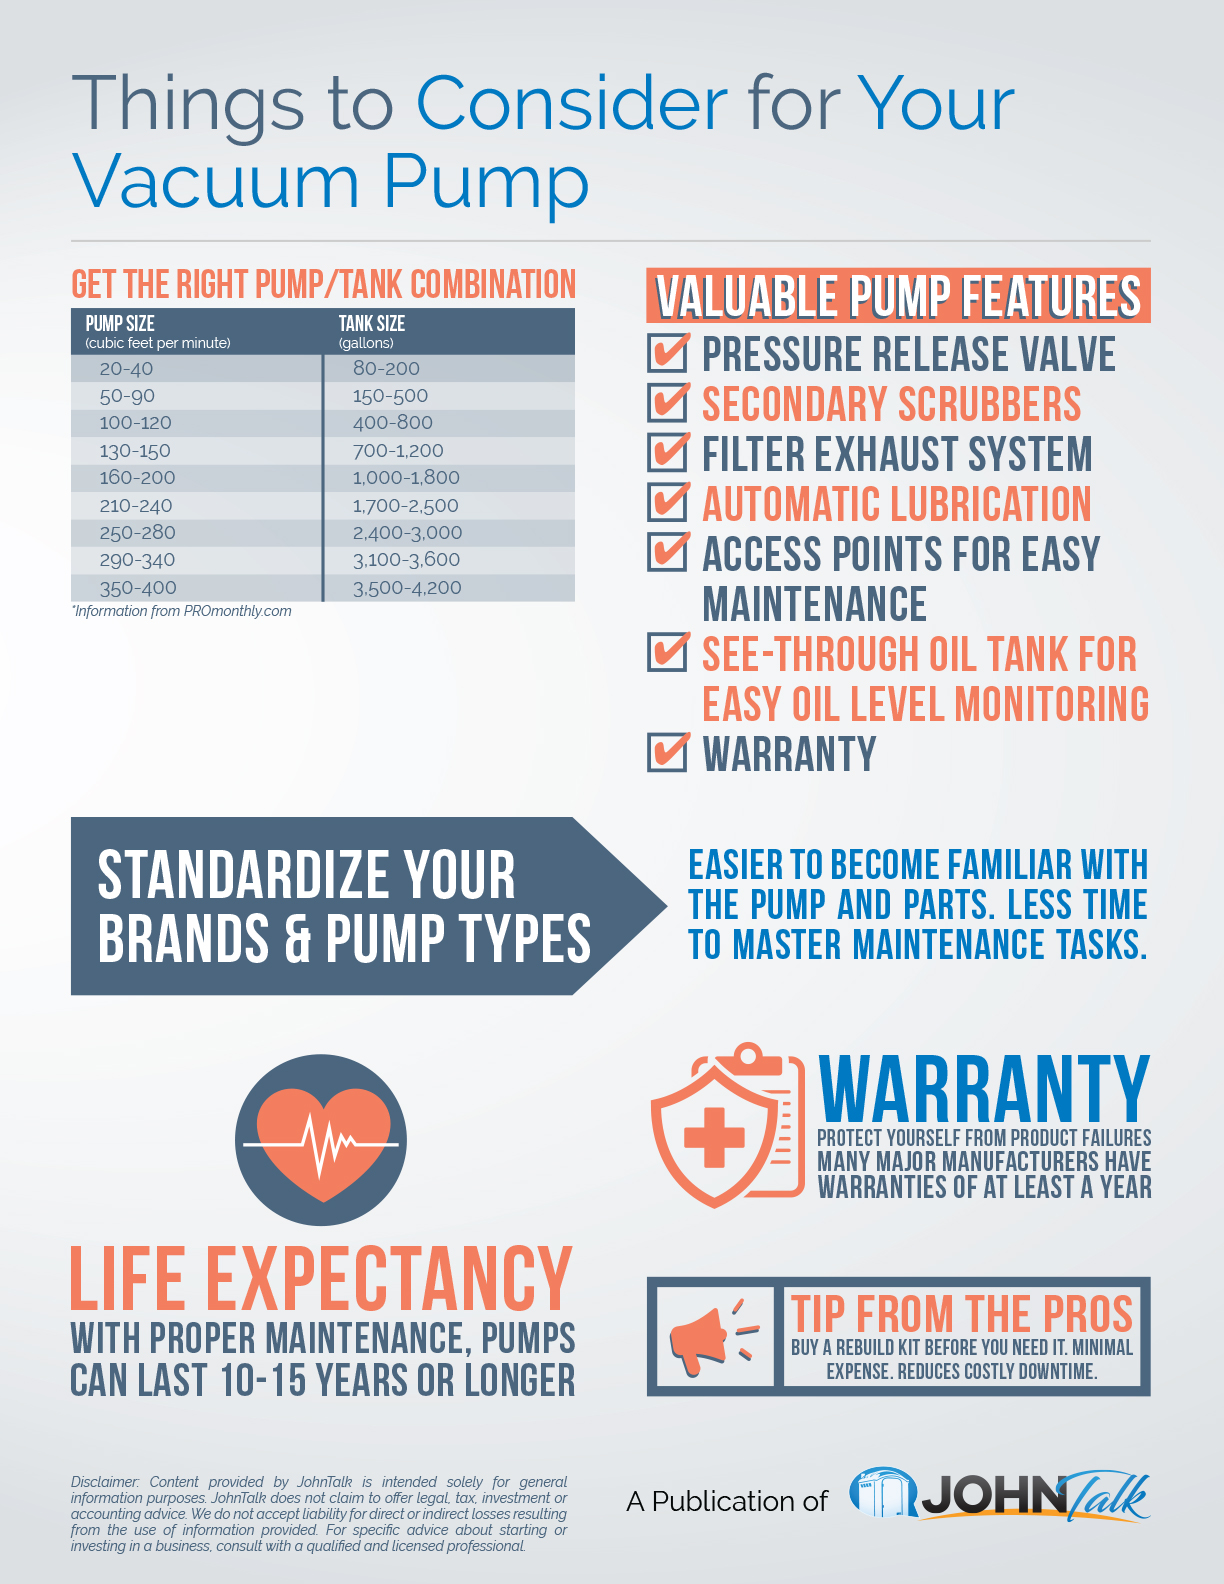 Things to Consider for Your Vacuum Pump